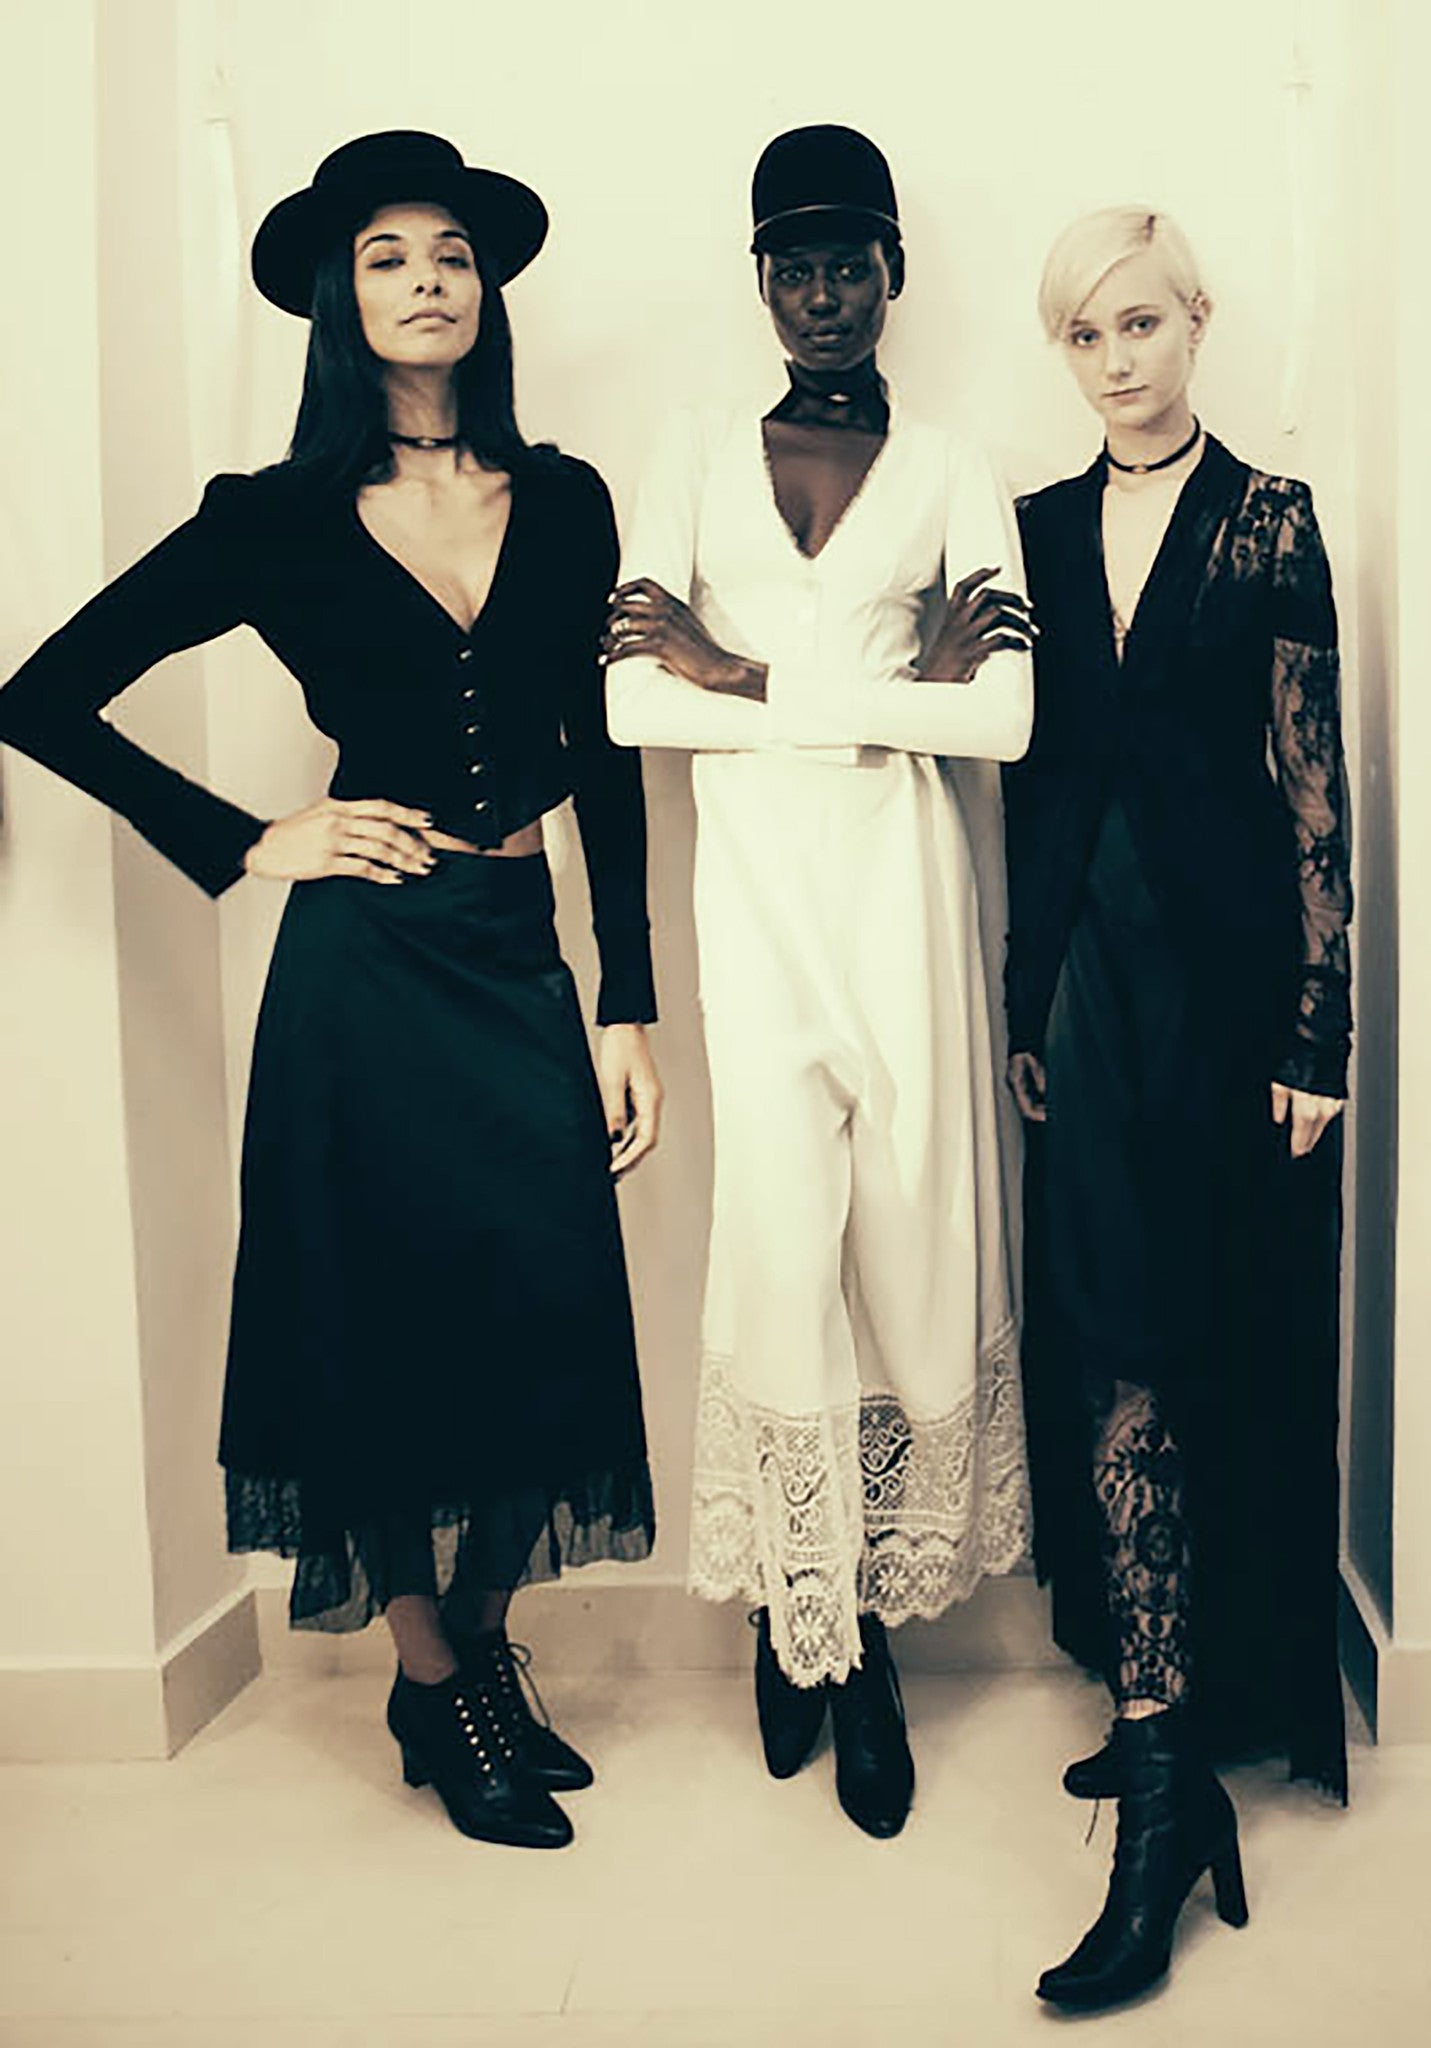 Heidy de la Rosa Model Ajak Deng Juliette Fazekas IMG Models Fitted Black Suede Victorian Jacket & Tulle Trim Silk Skirt Wendy Nichol Clothing Designer Fashion Runway show SS15 handmade in NYC custom tailoring